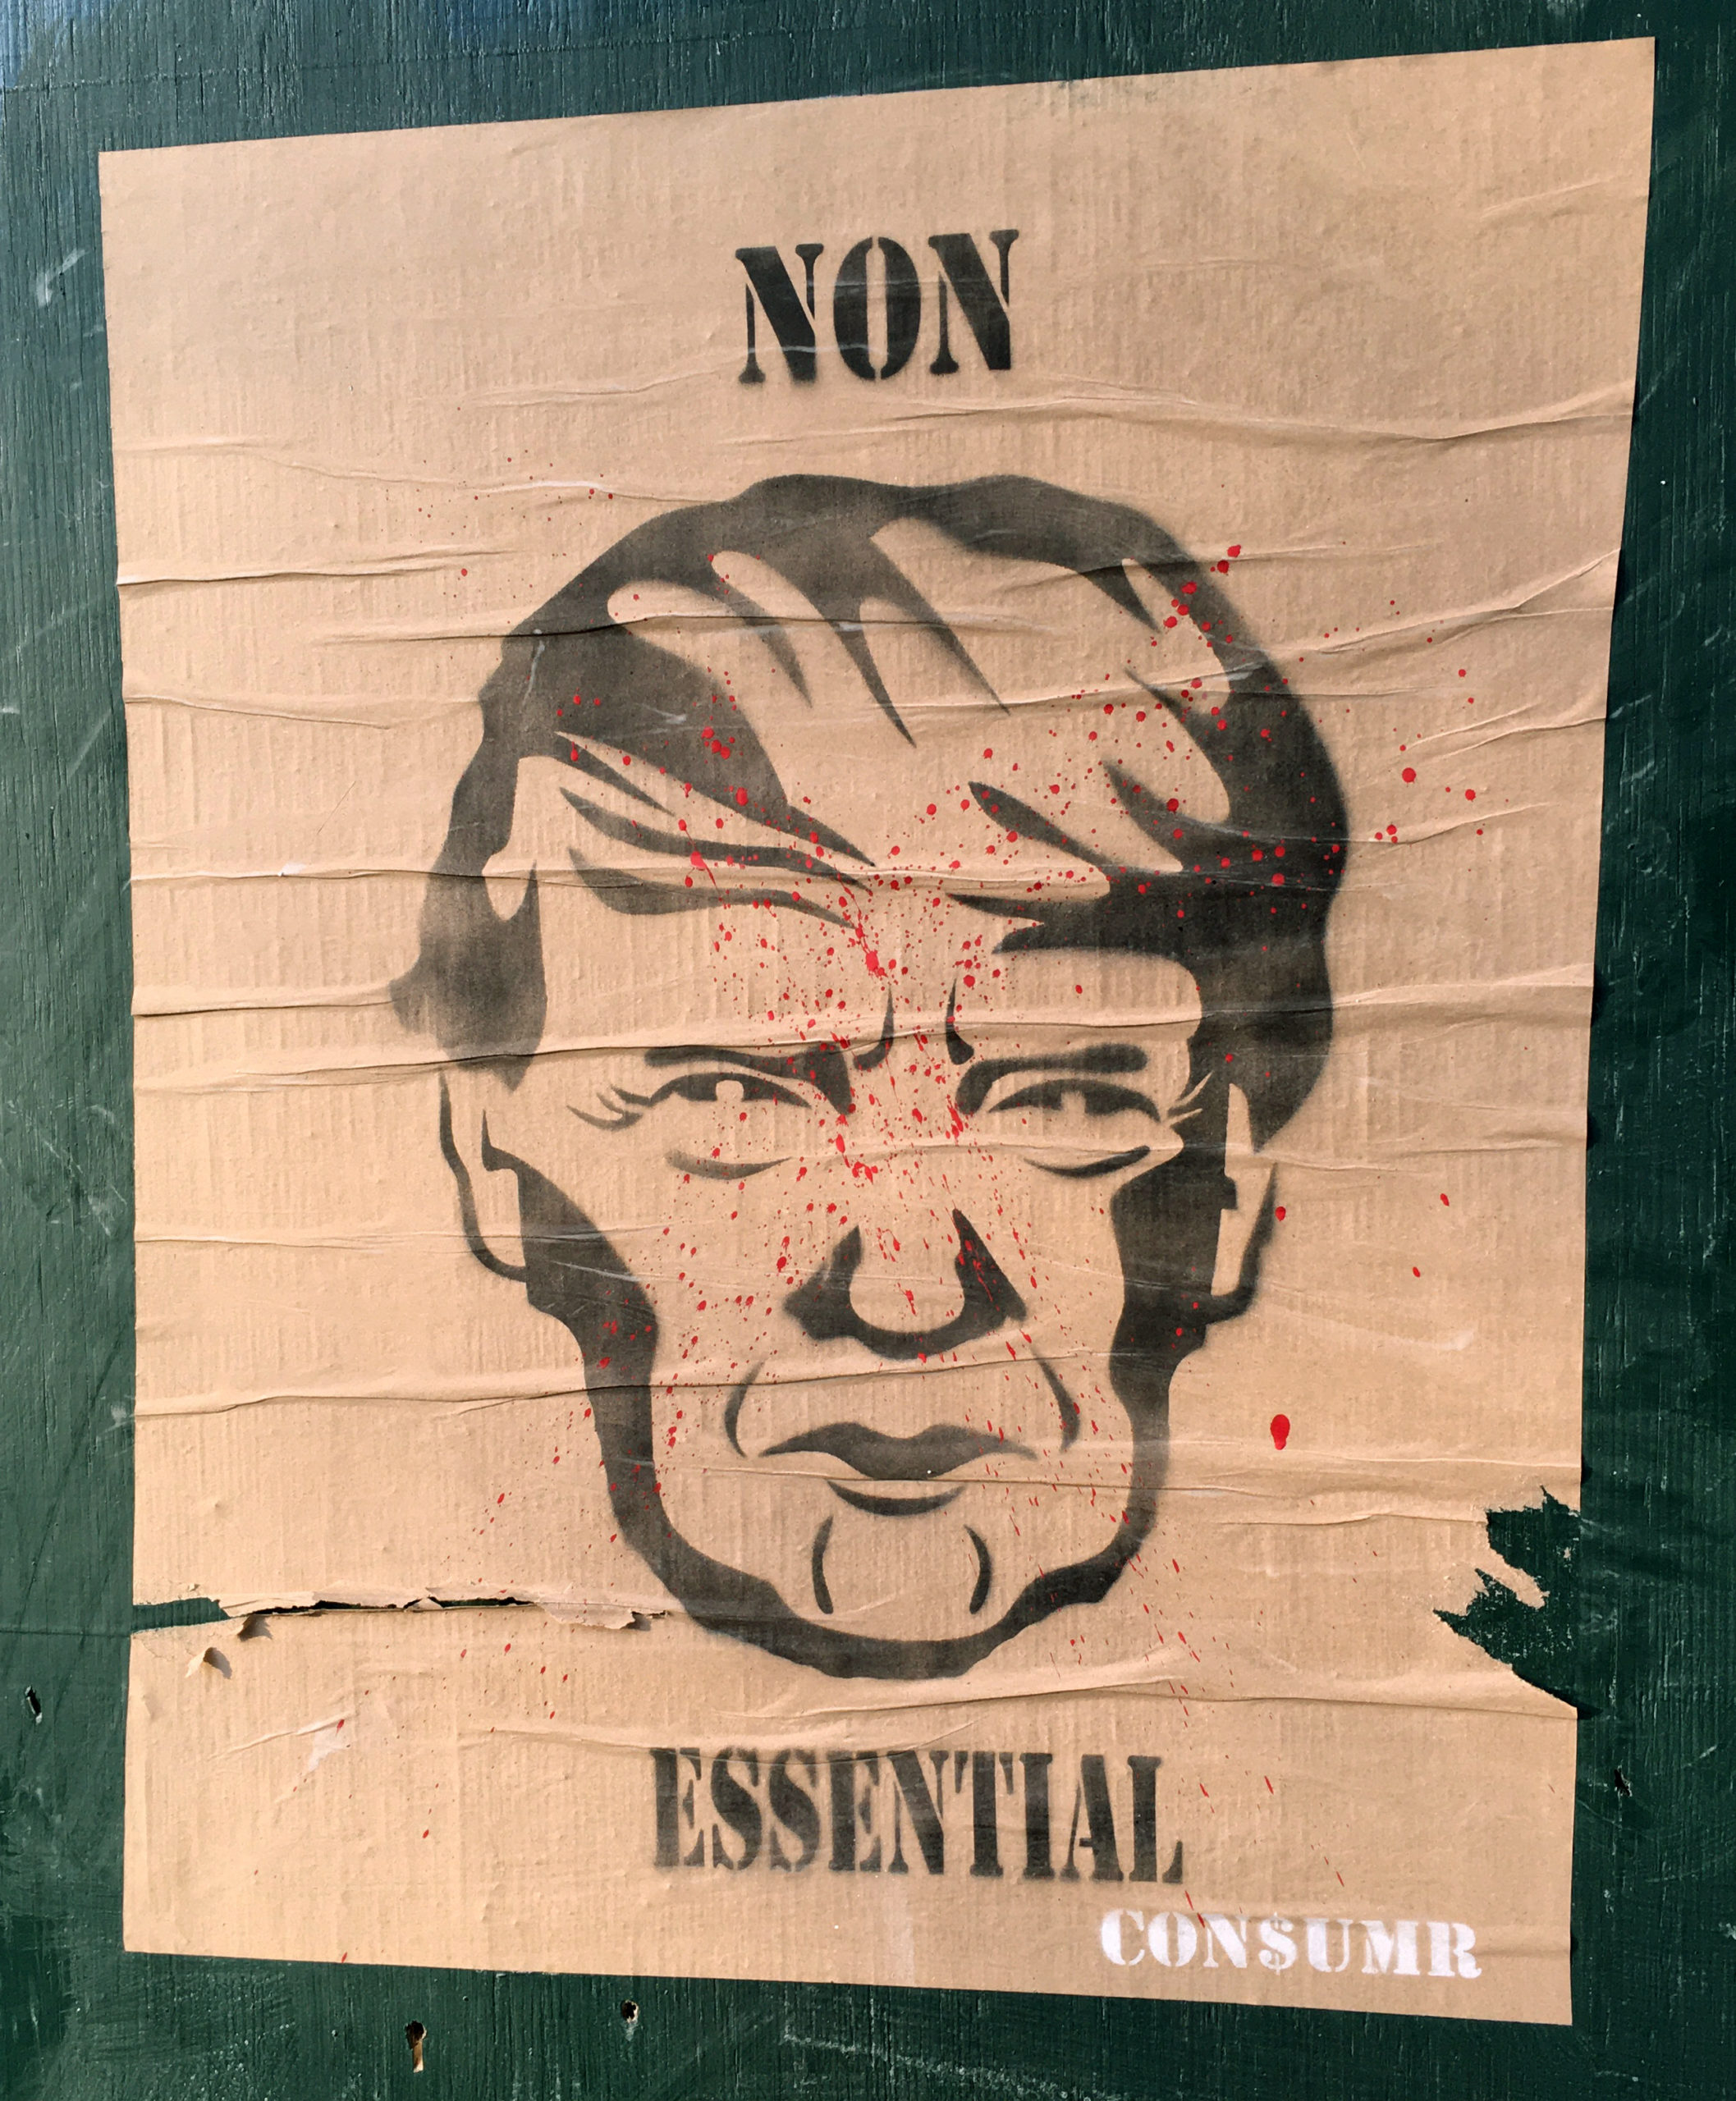 A poster on a wall.